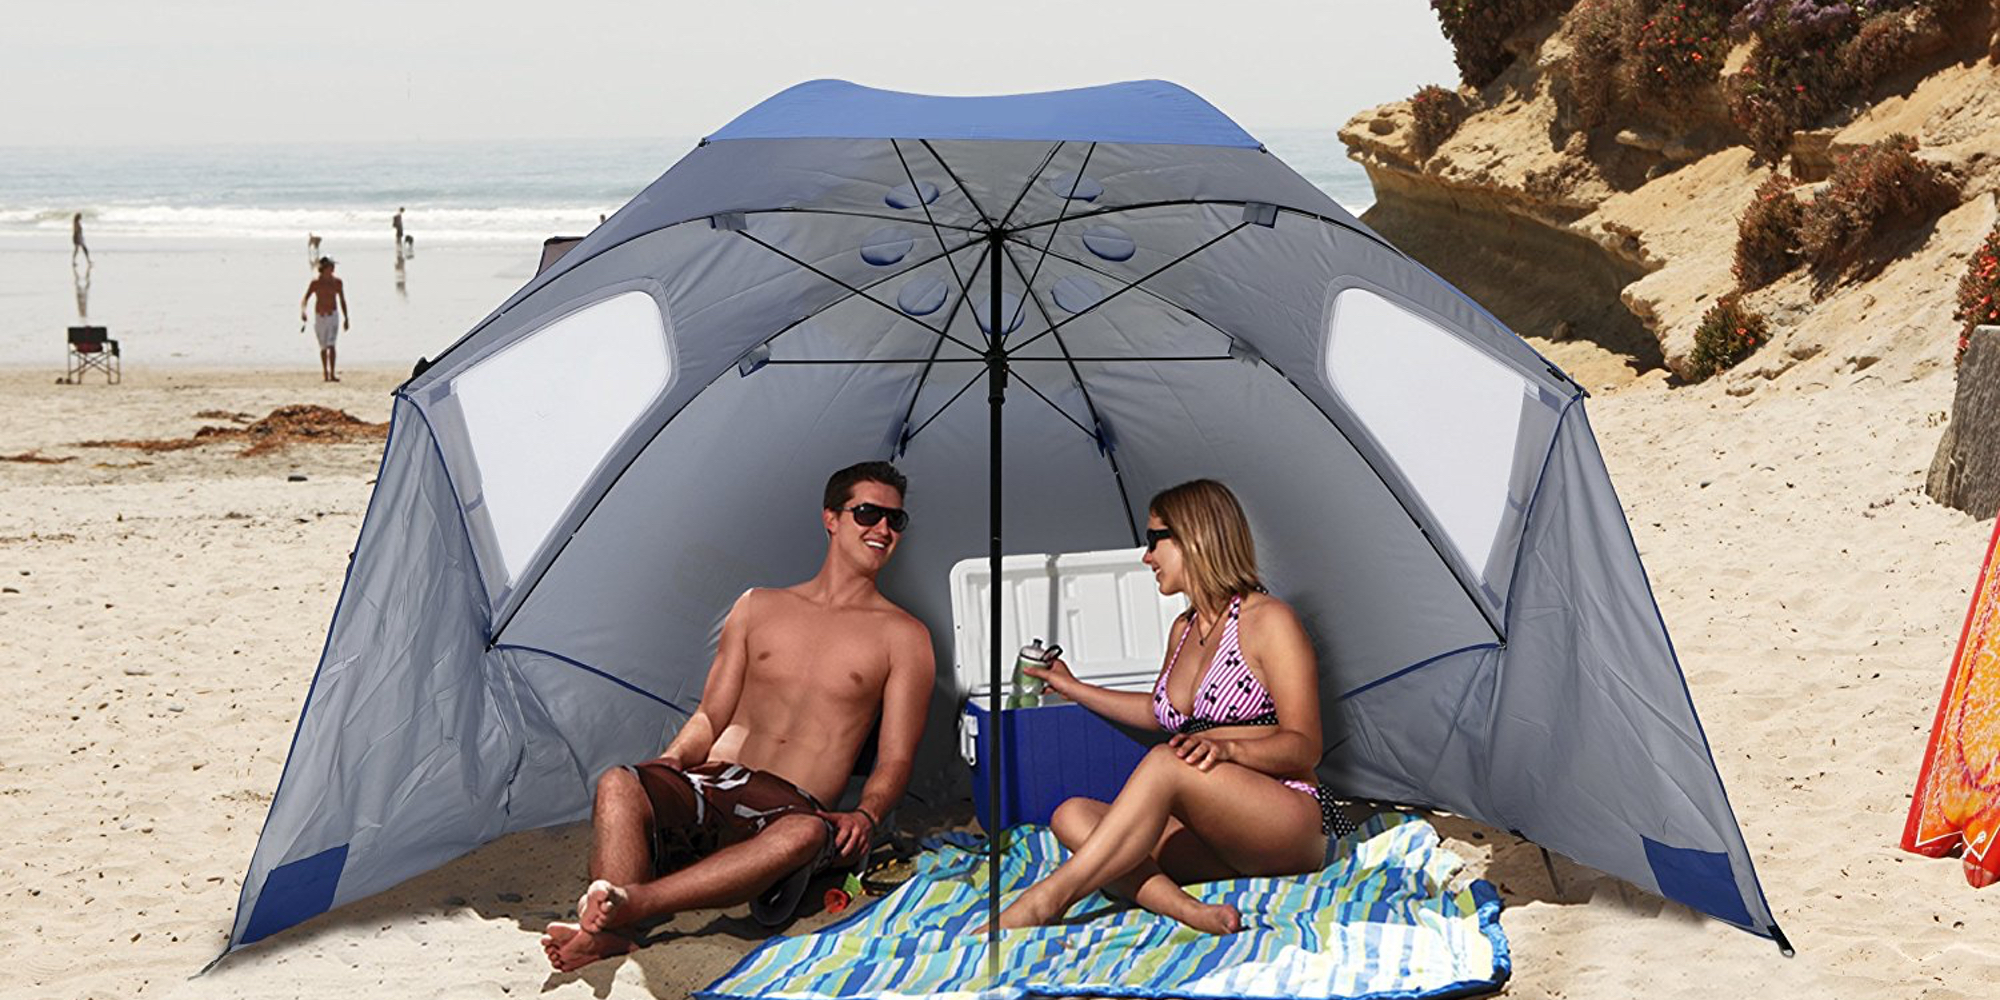 Sport-Brella XL 9-foot Canopy keeps you out of the sun for $28 (Reg. $60)